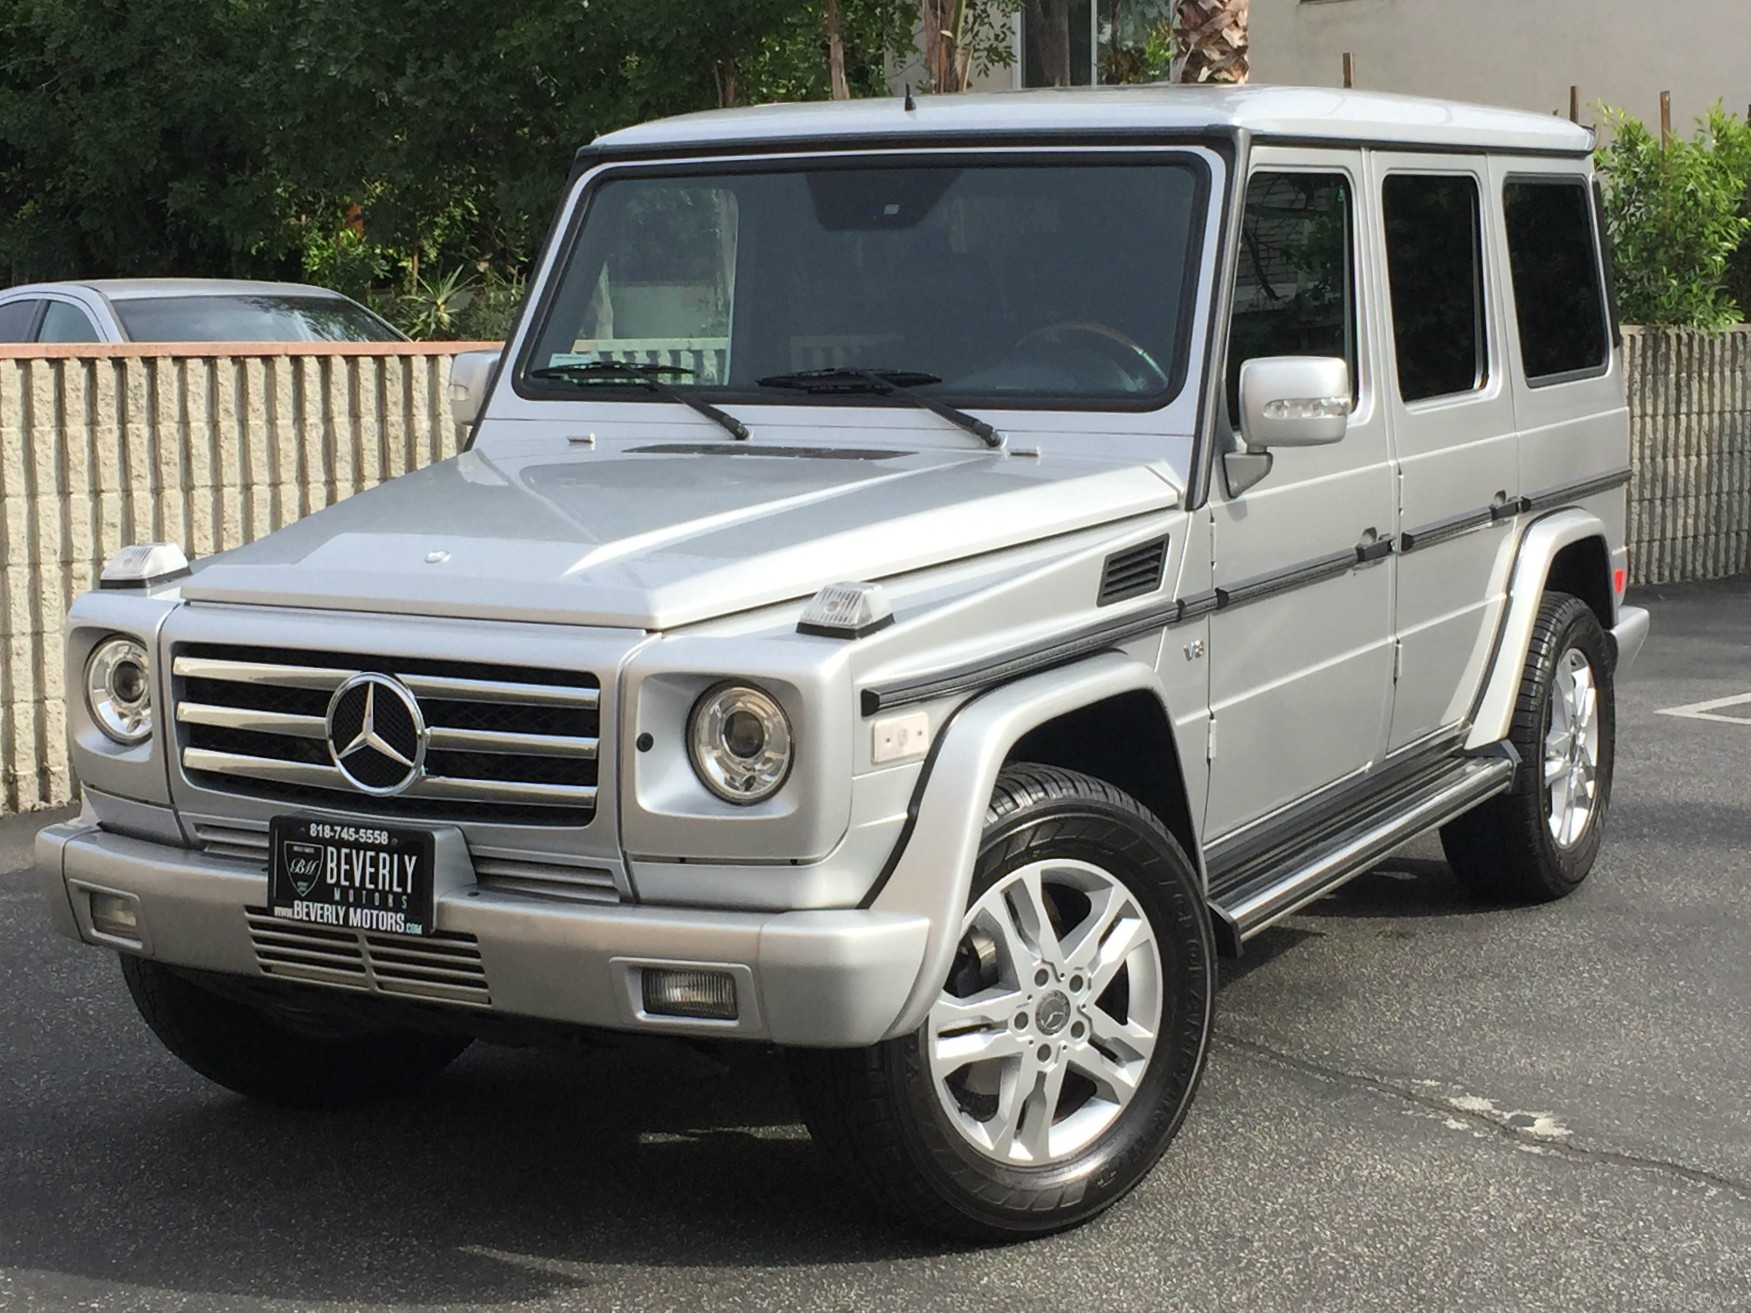 2004 mercedes benz g500 for sale silver on black beverly